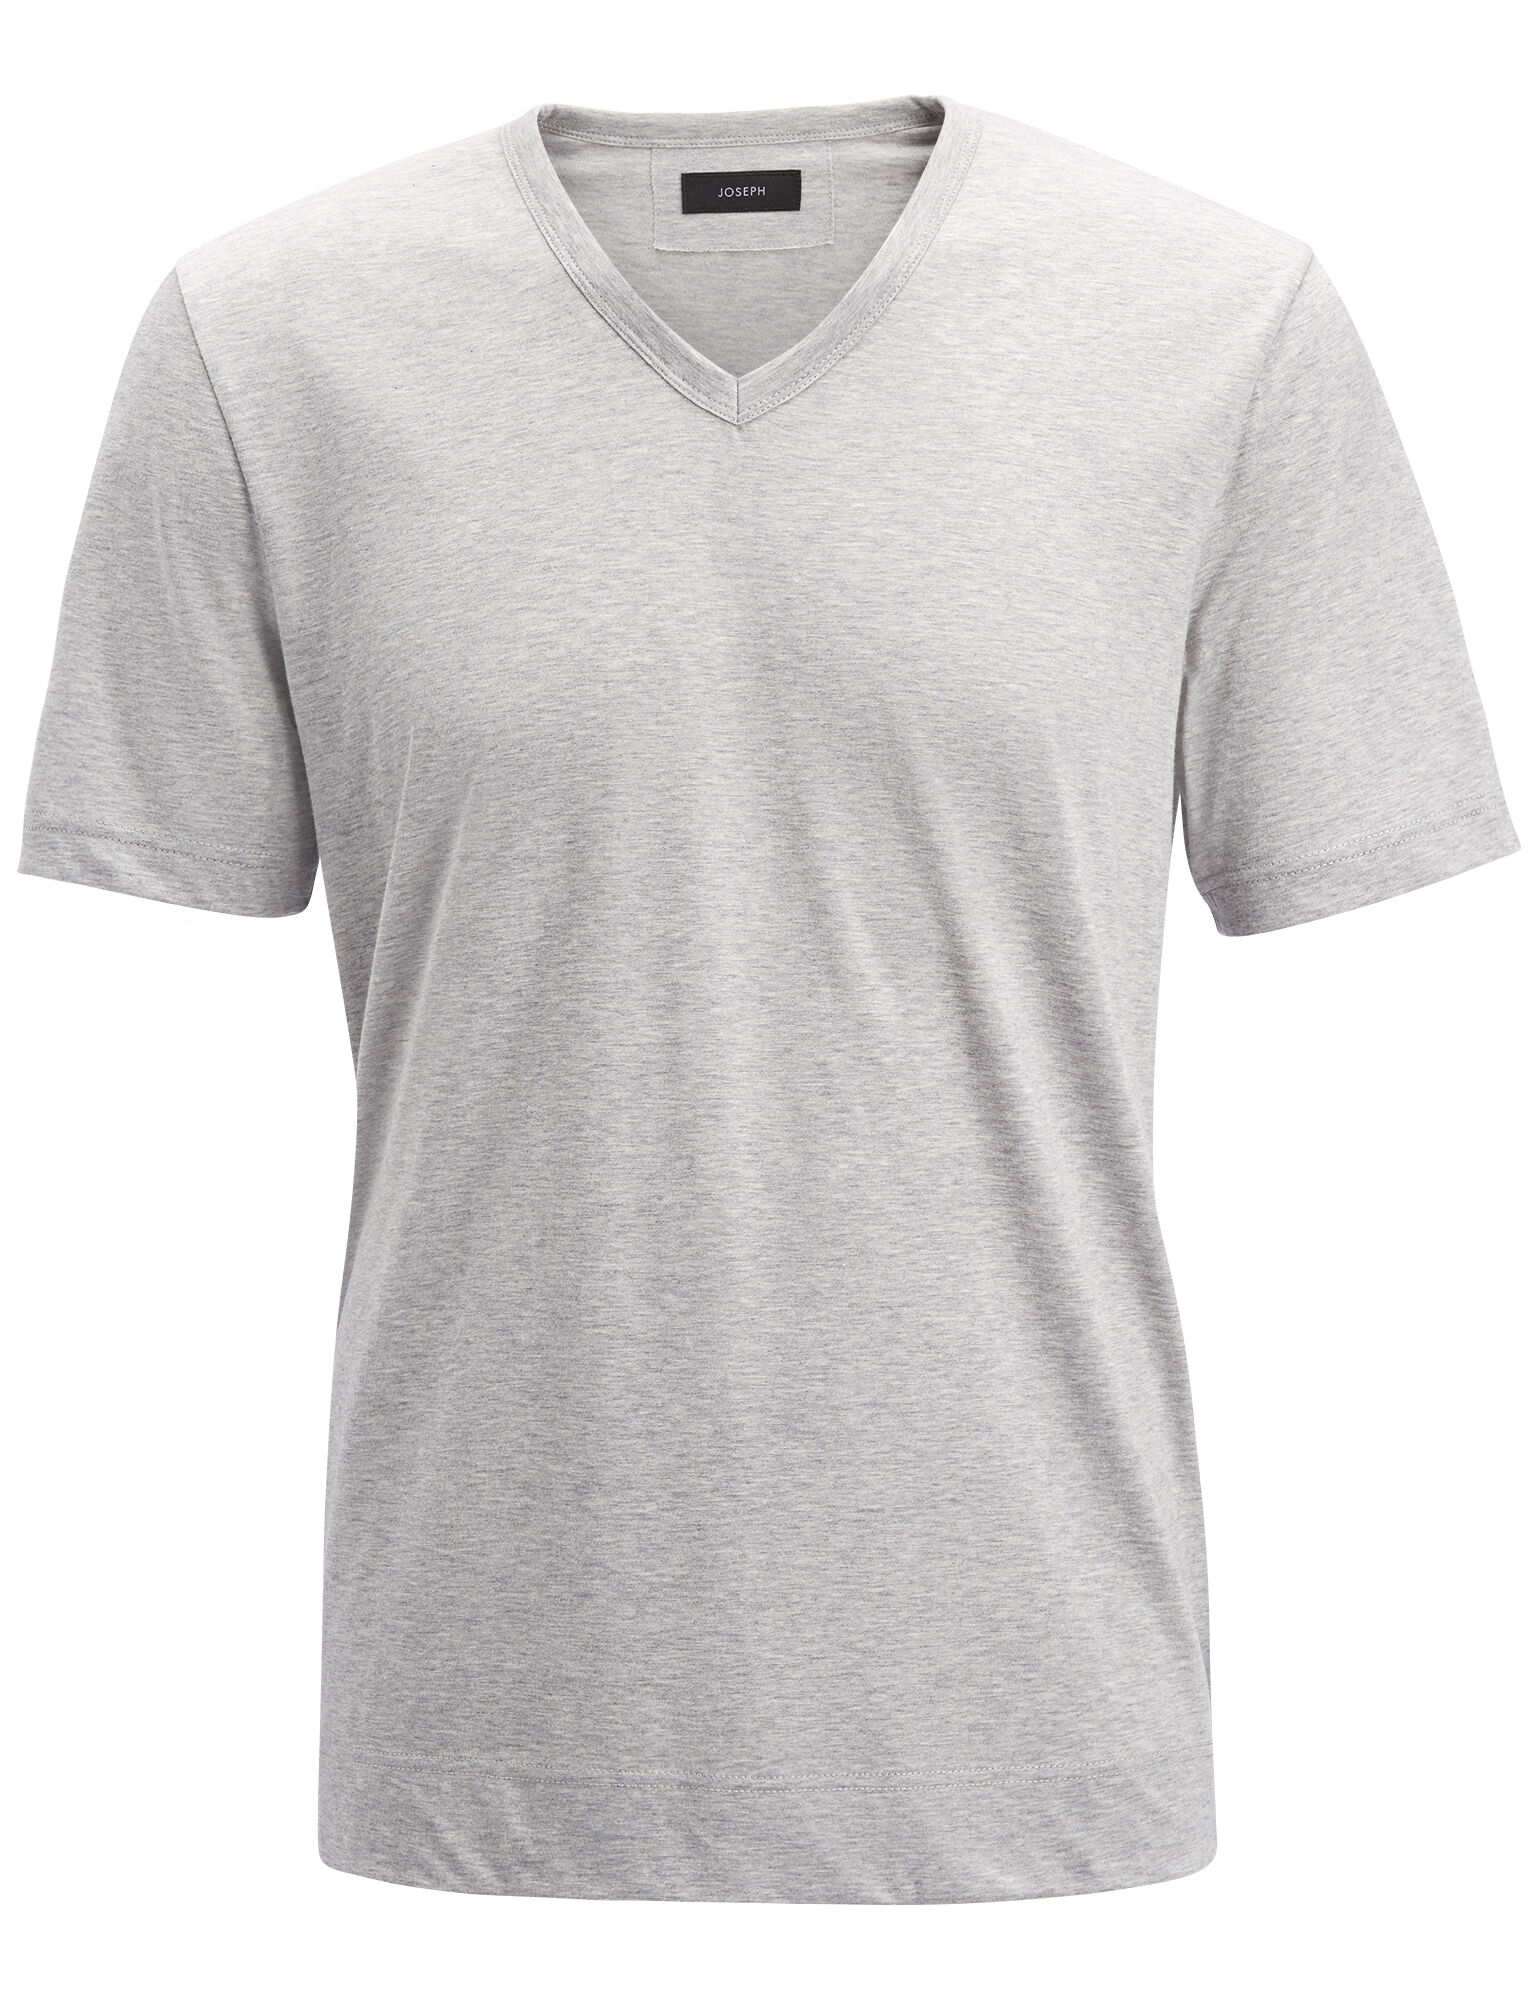 Joseph, Mercerized Jersey V Neck Tee, in CONCRETE